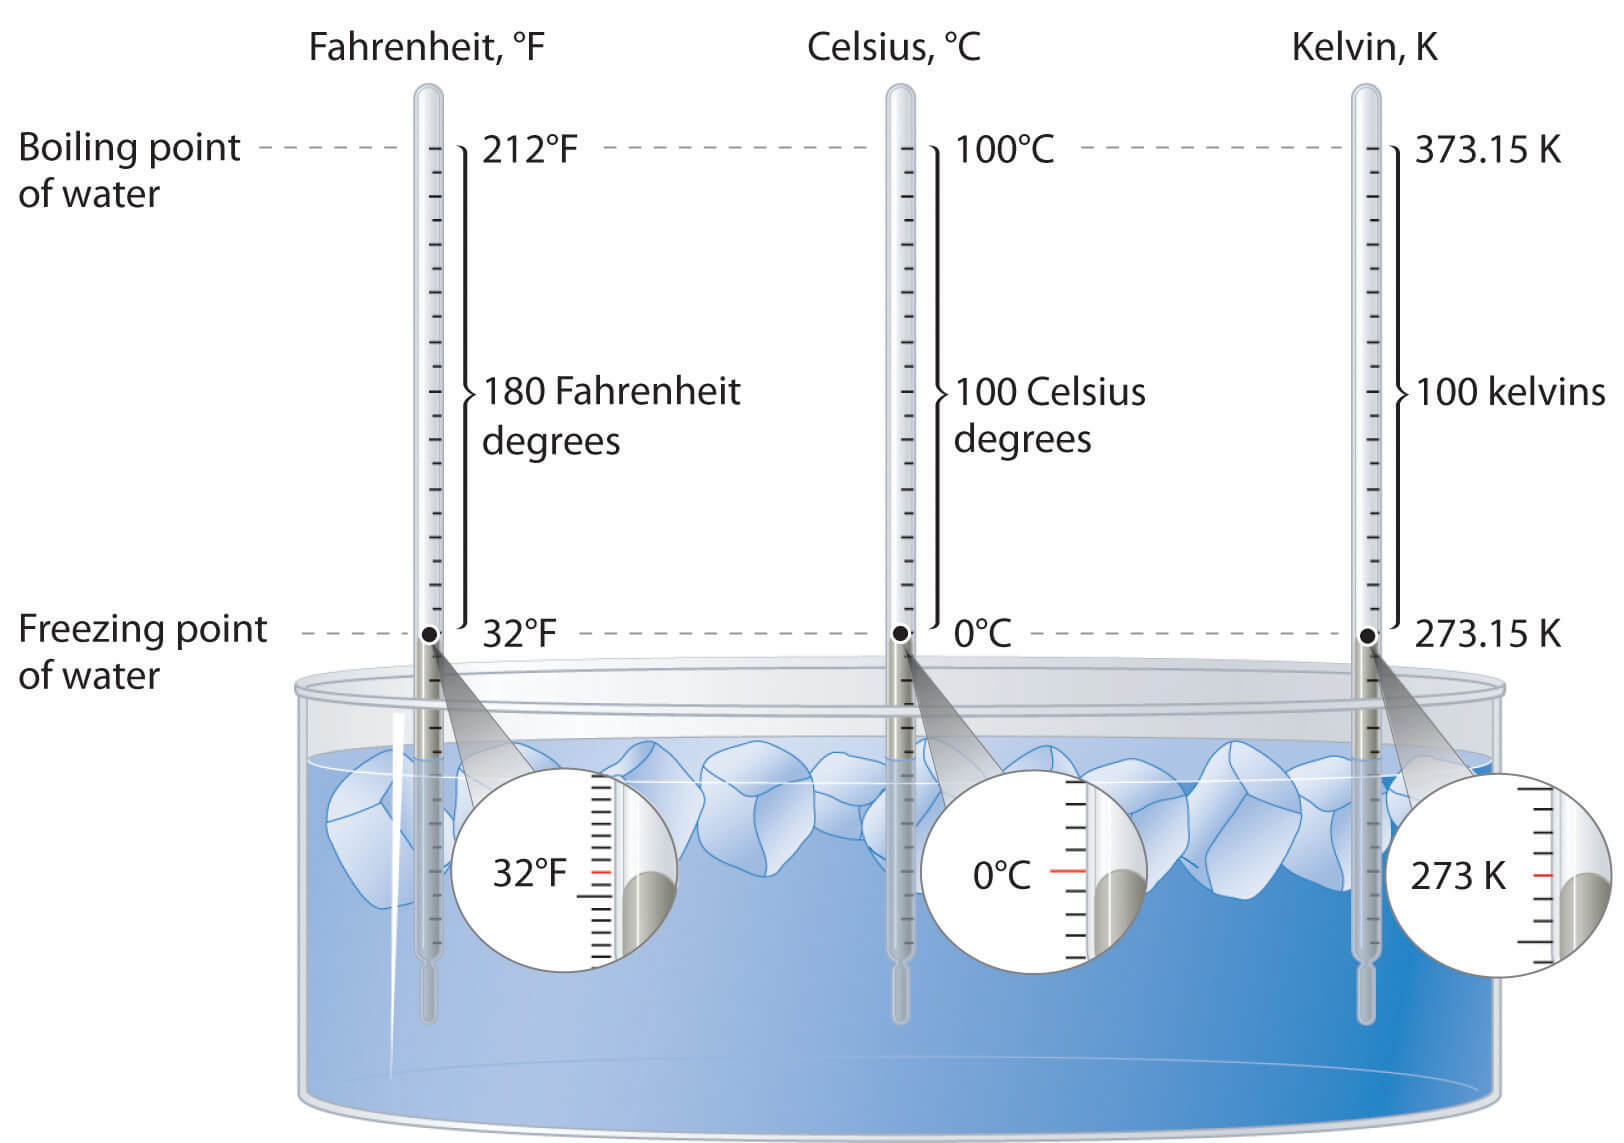 Relationship between Temperature Scales